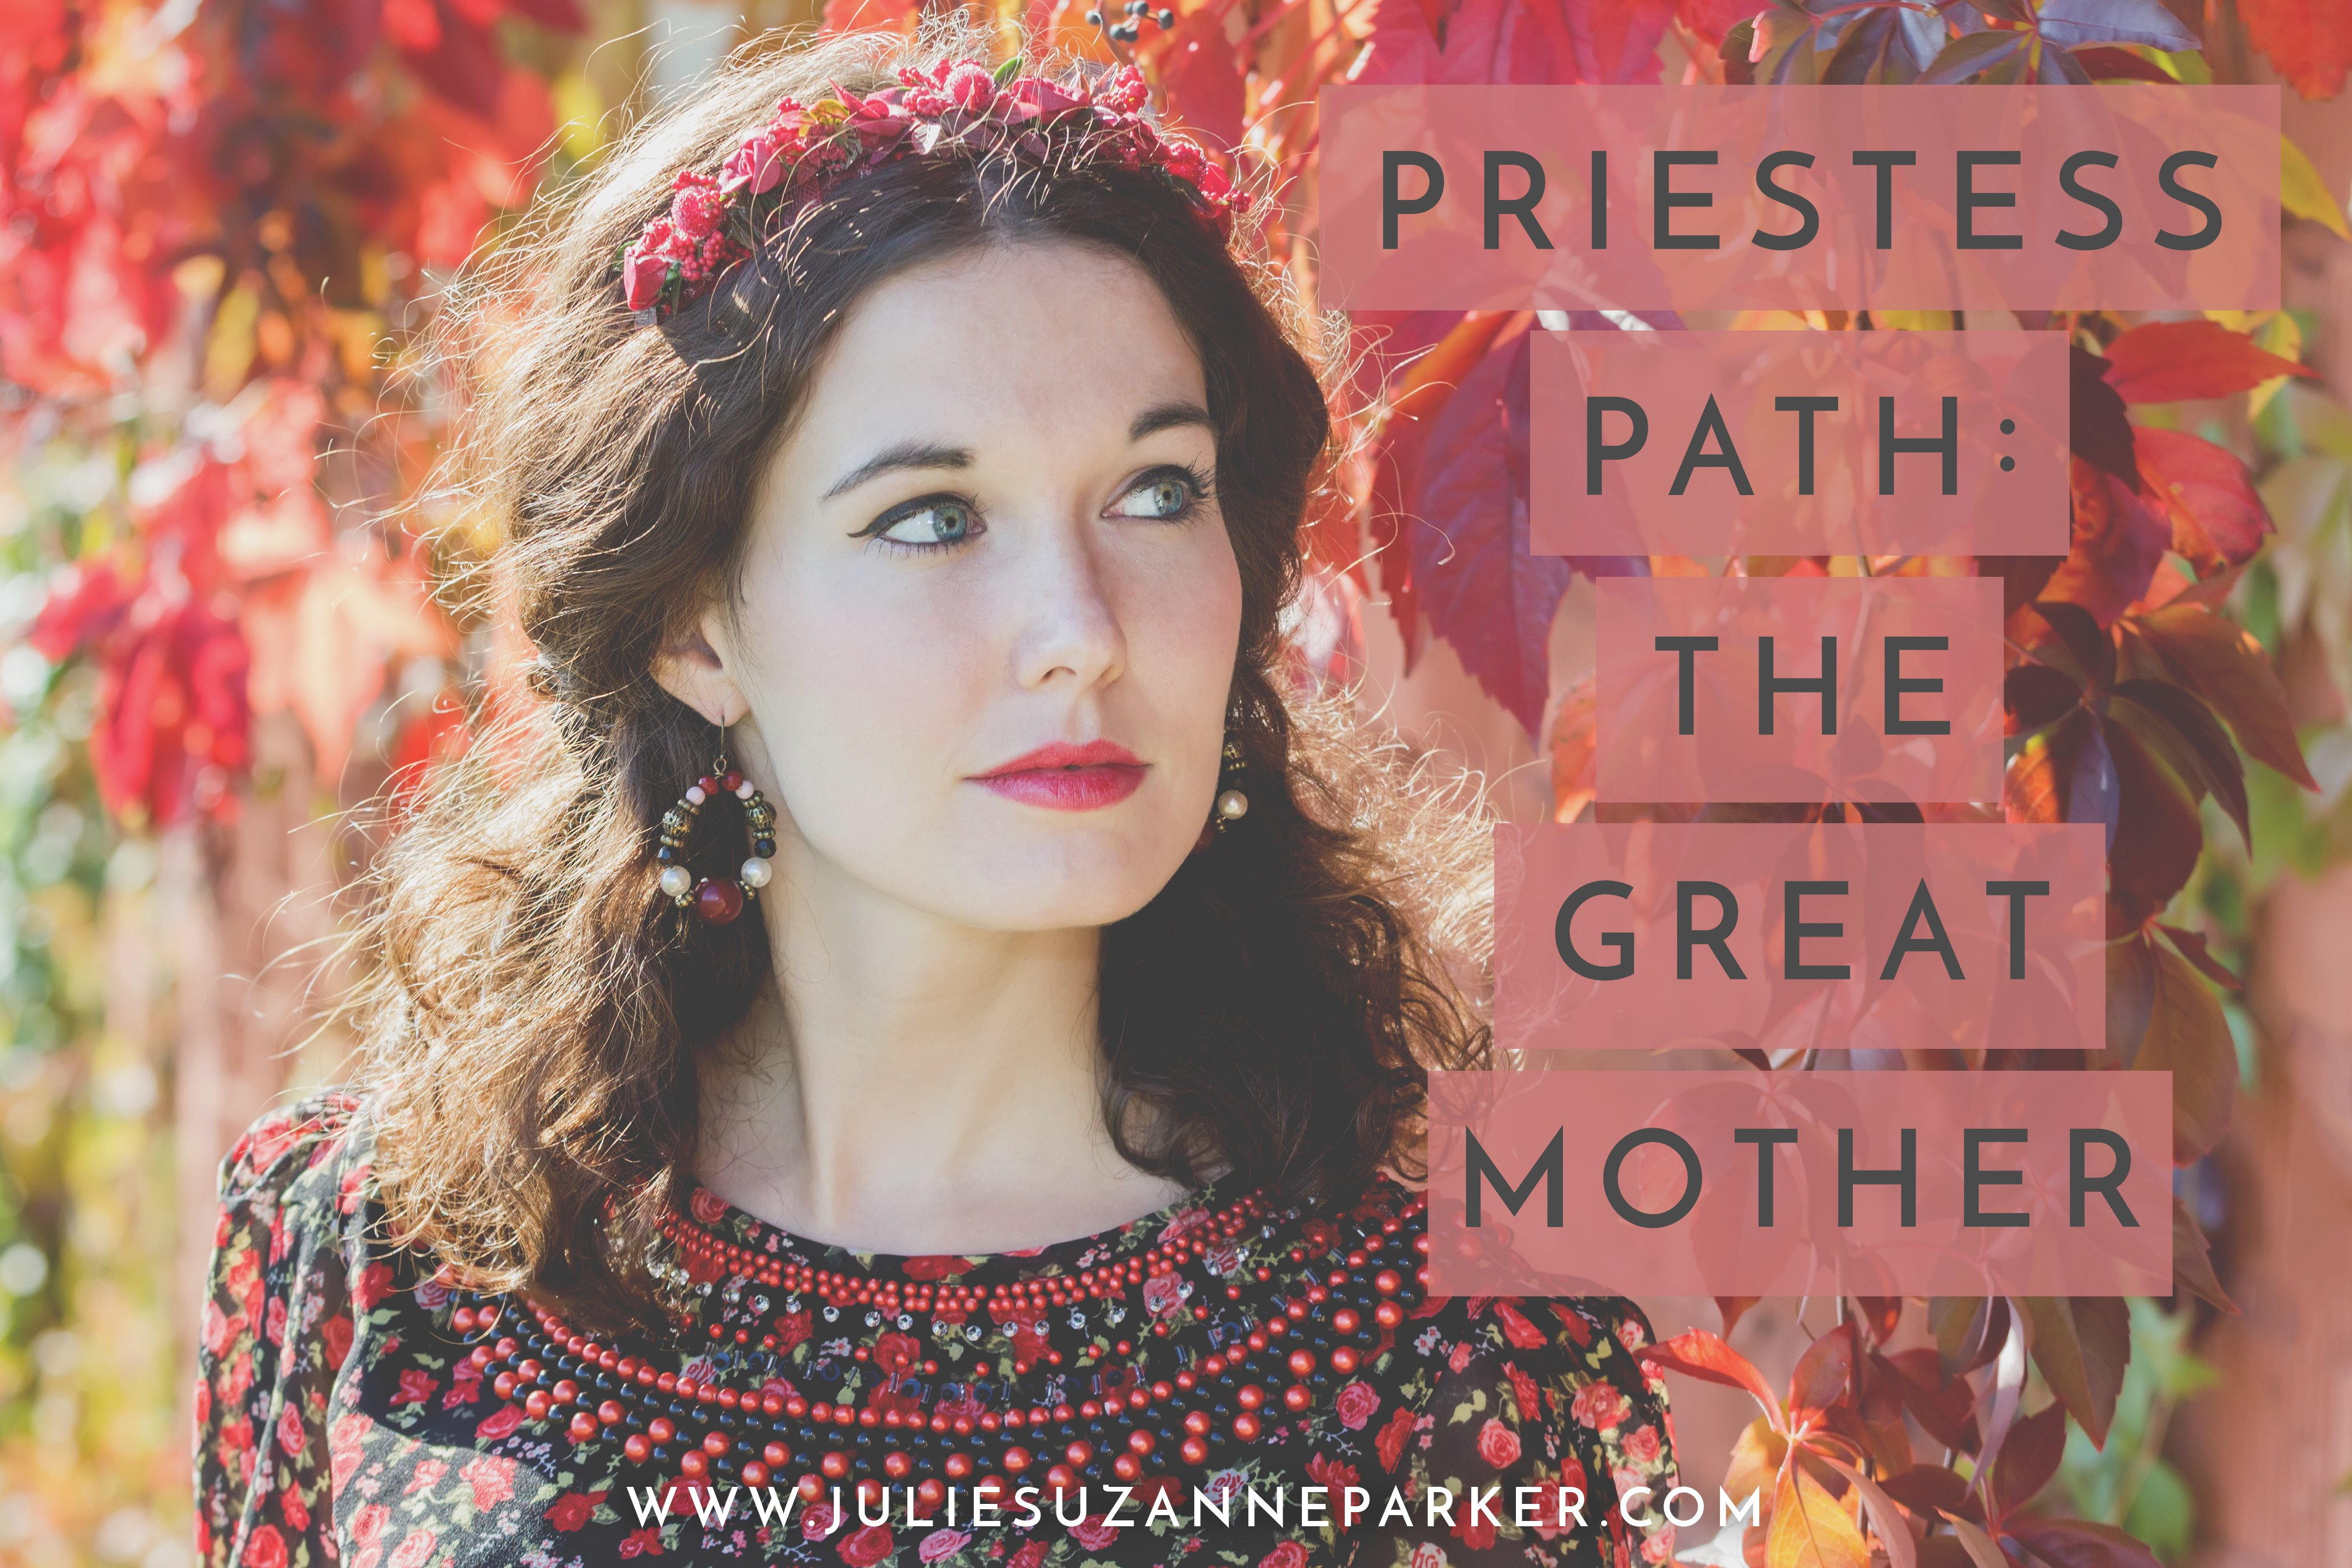 Priestess Path: The Great Mother